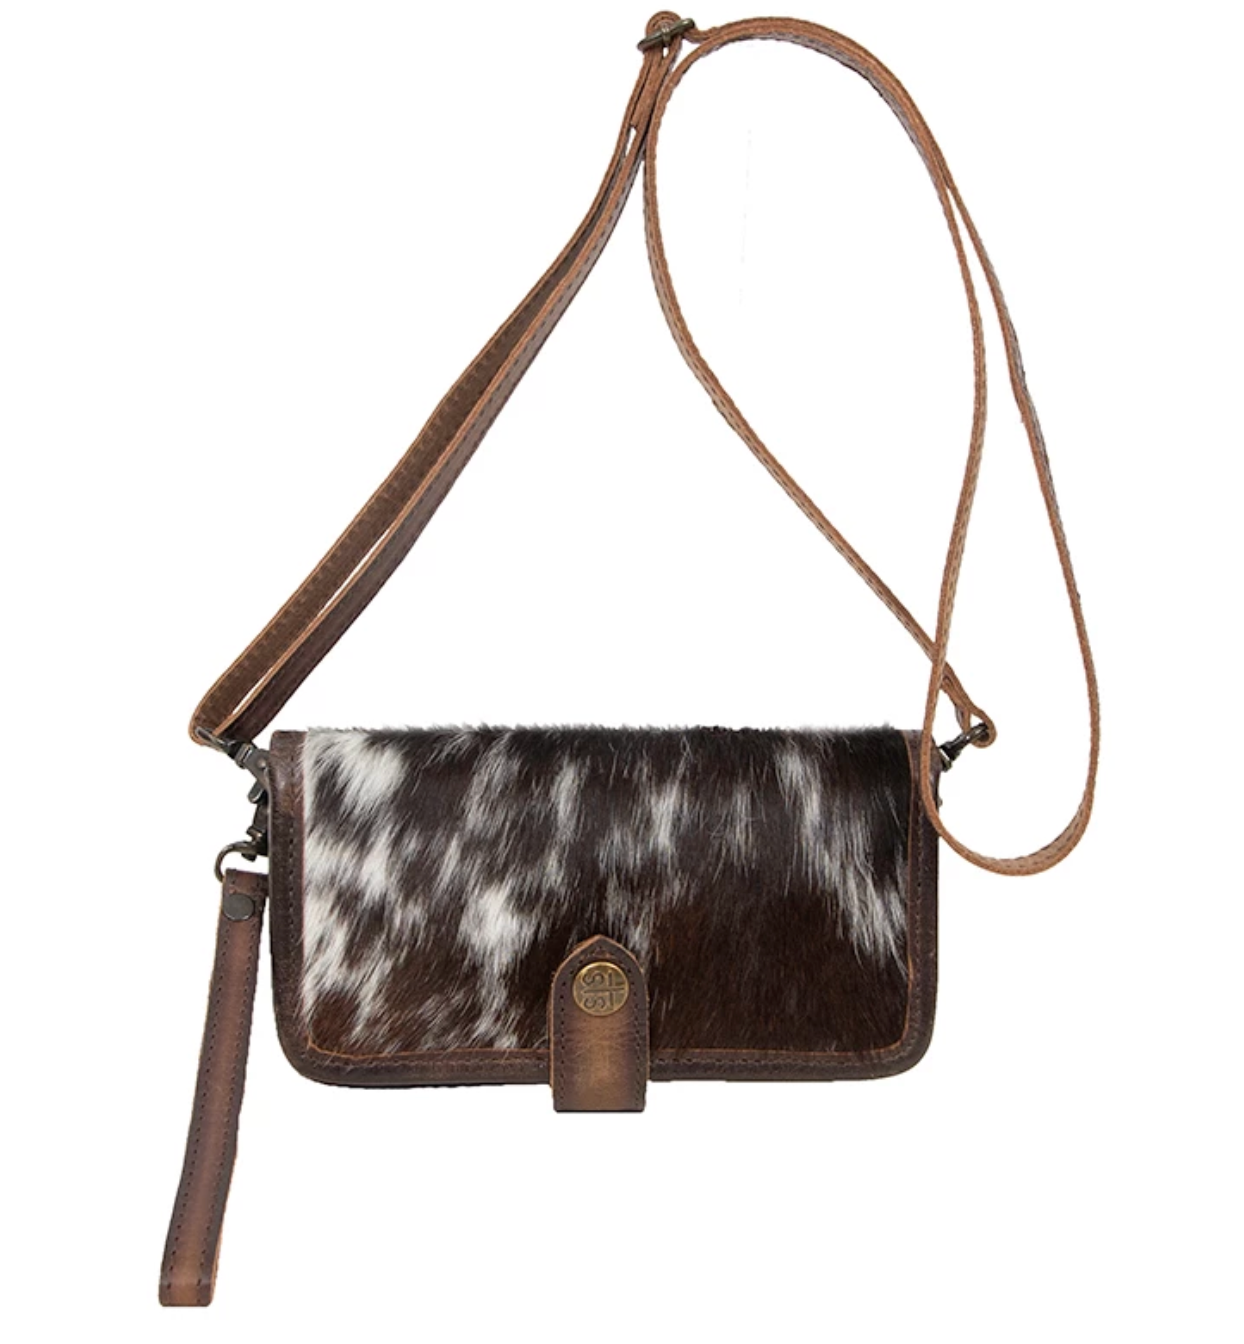 STS Ranchwear Cowhide Crossbody Wallet WOMEN - Accessories - Handbags - Crossbody bags STS Ranchwear Teskeys